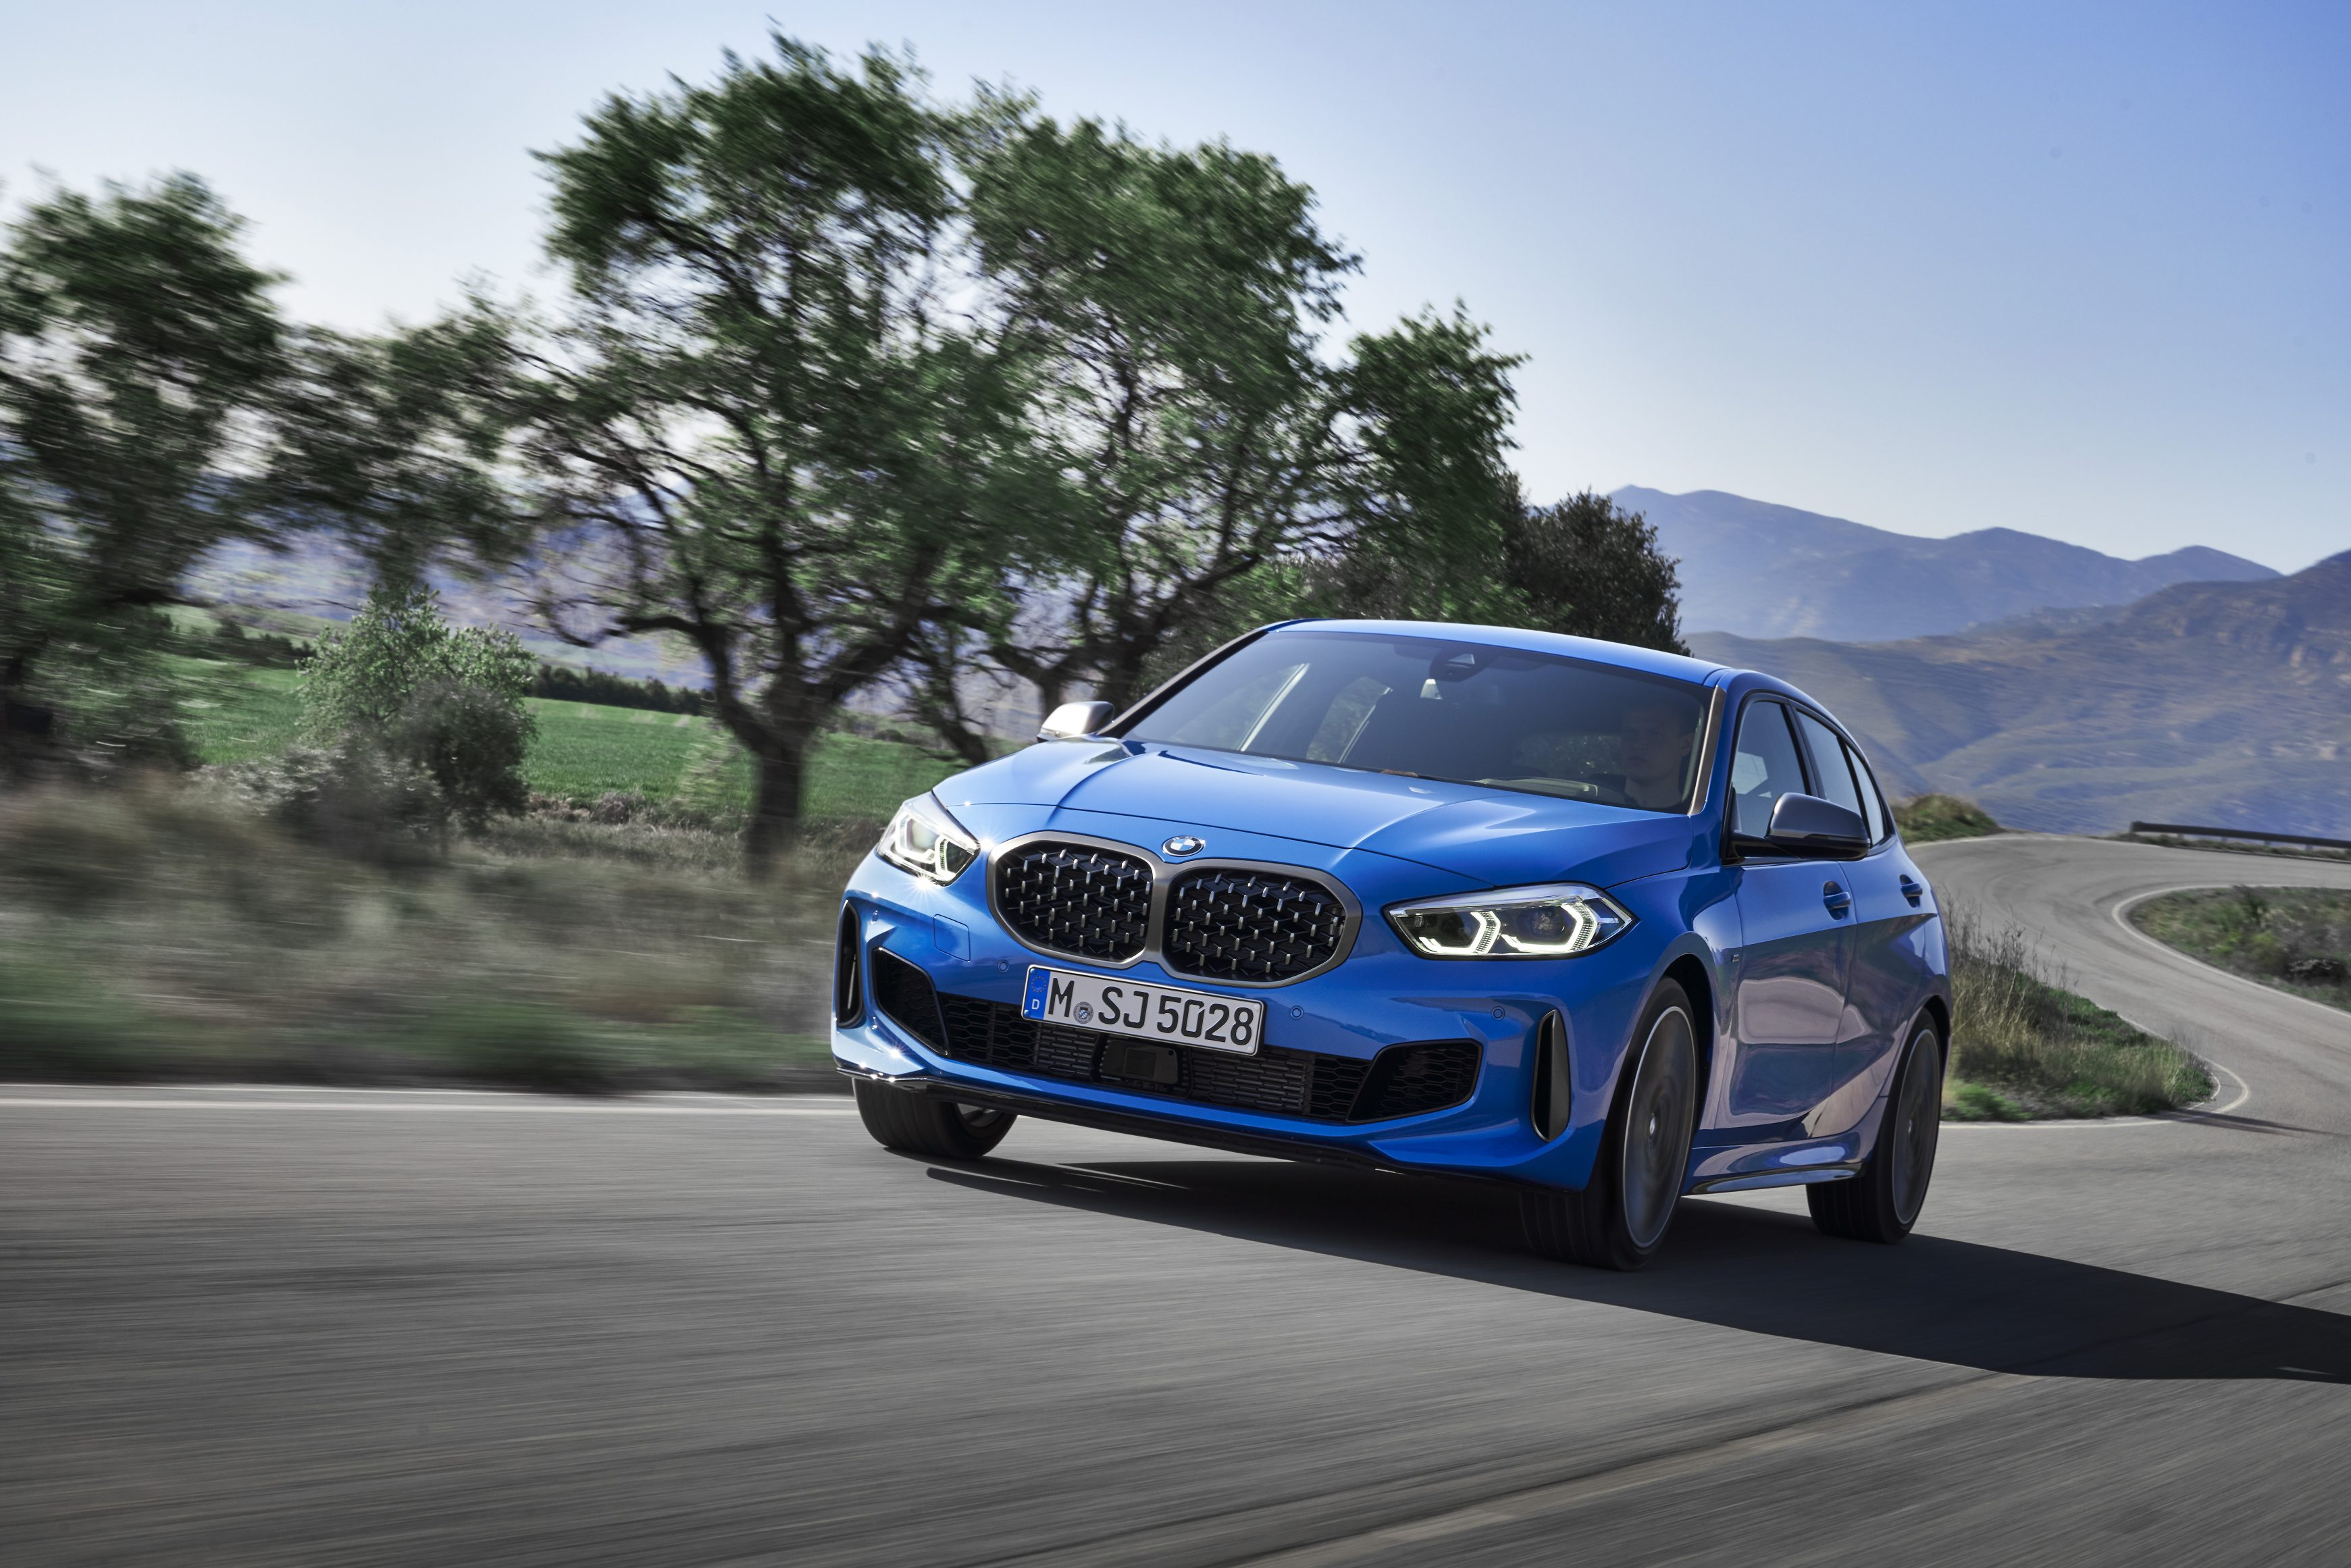 BMW 1 Series on a winding country road